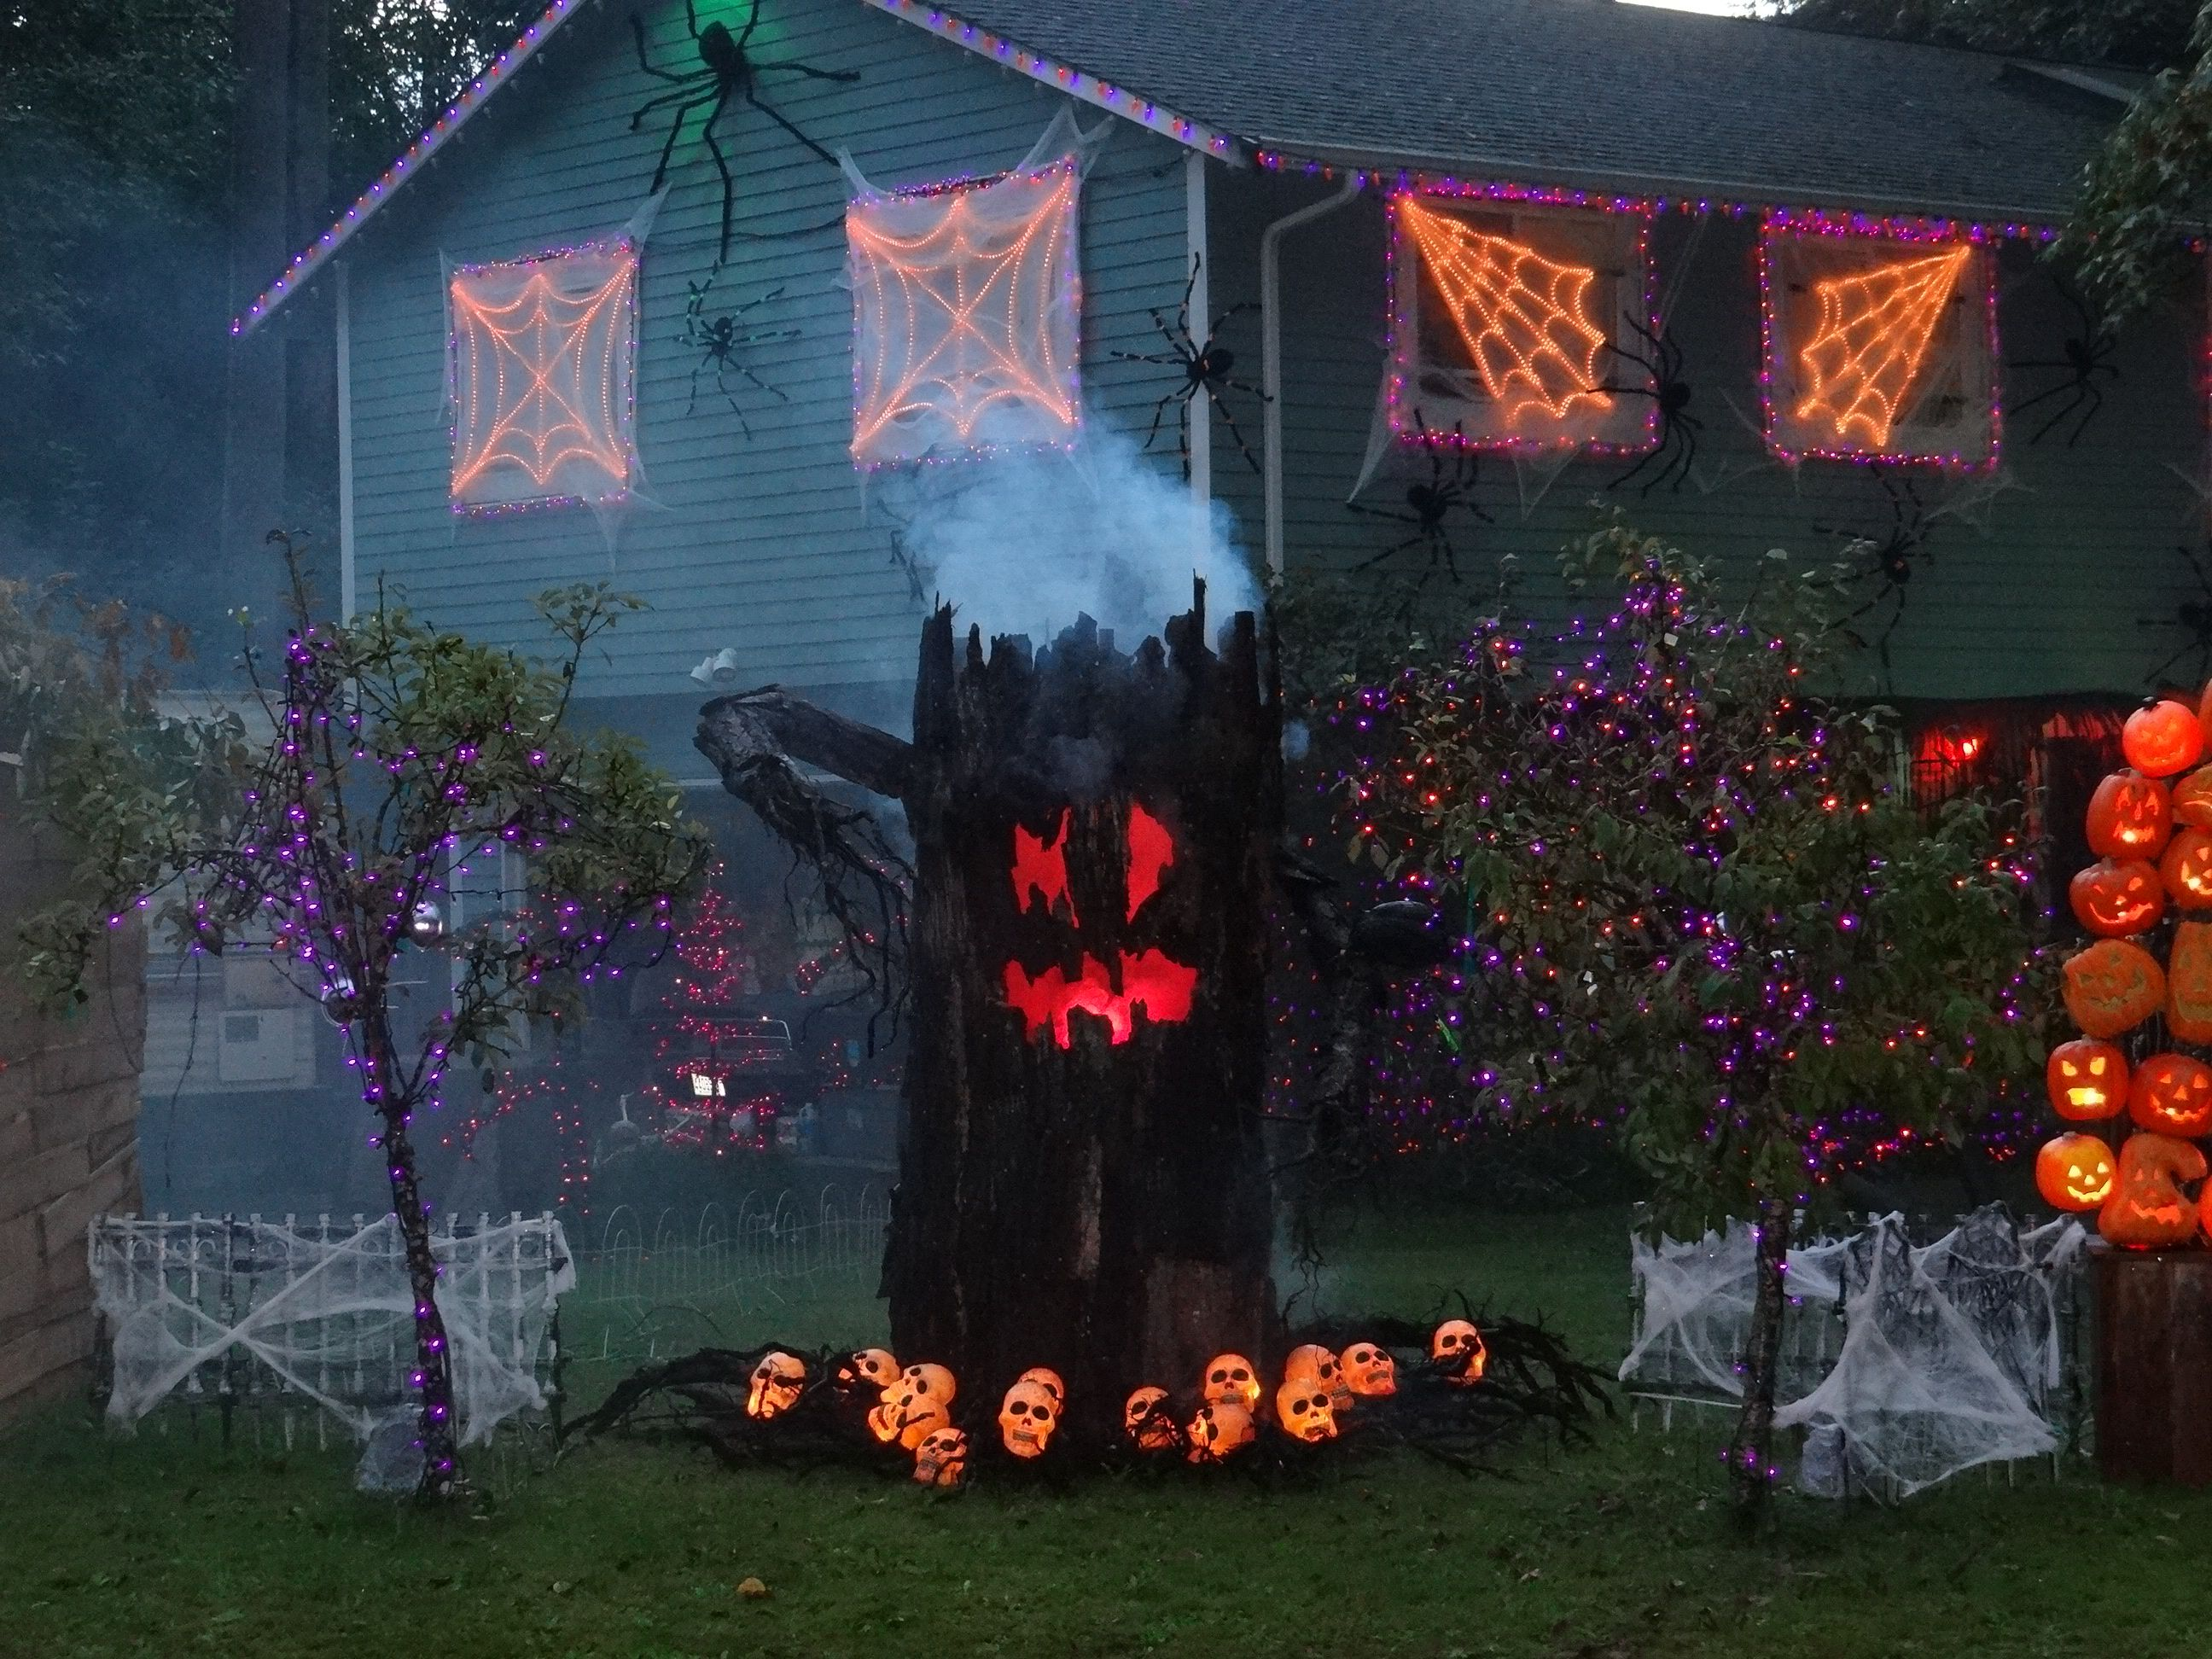 decoration cool decorating halloween outdoor with scary black tree and spyder also pumpkins for halloween outdoor design ideas wonderful halloween outdoor - Cool Halloween Decoration Ideas